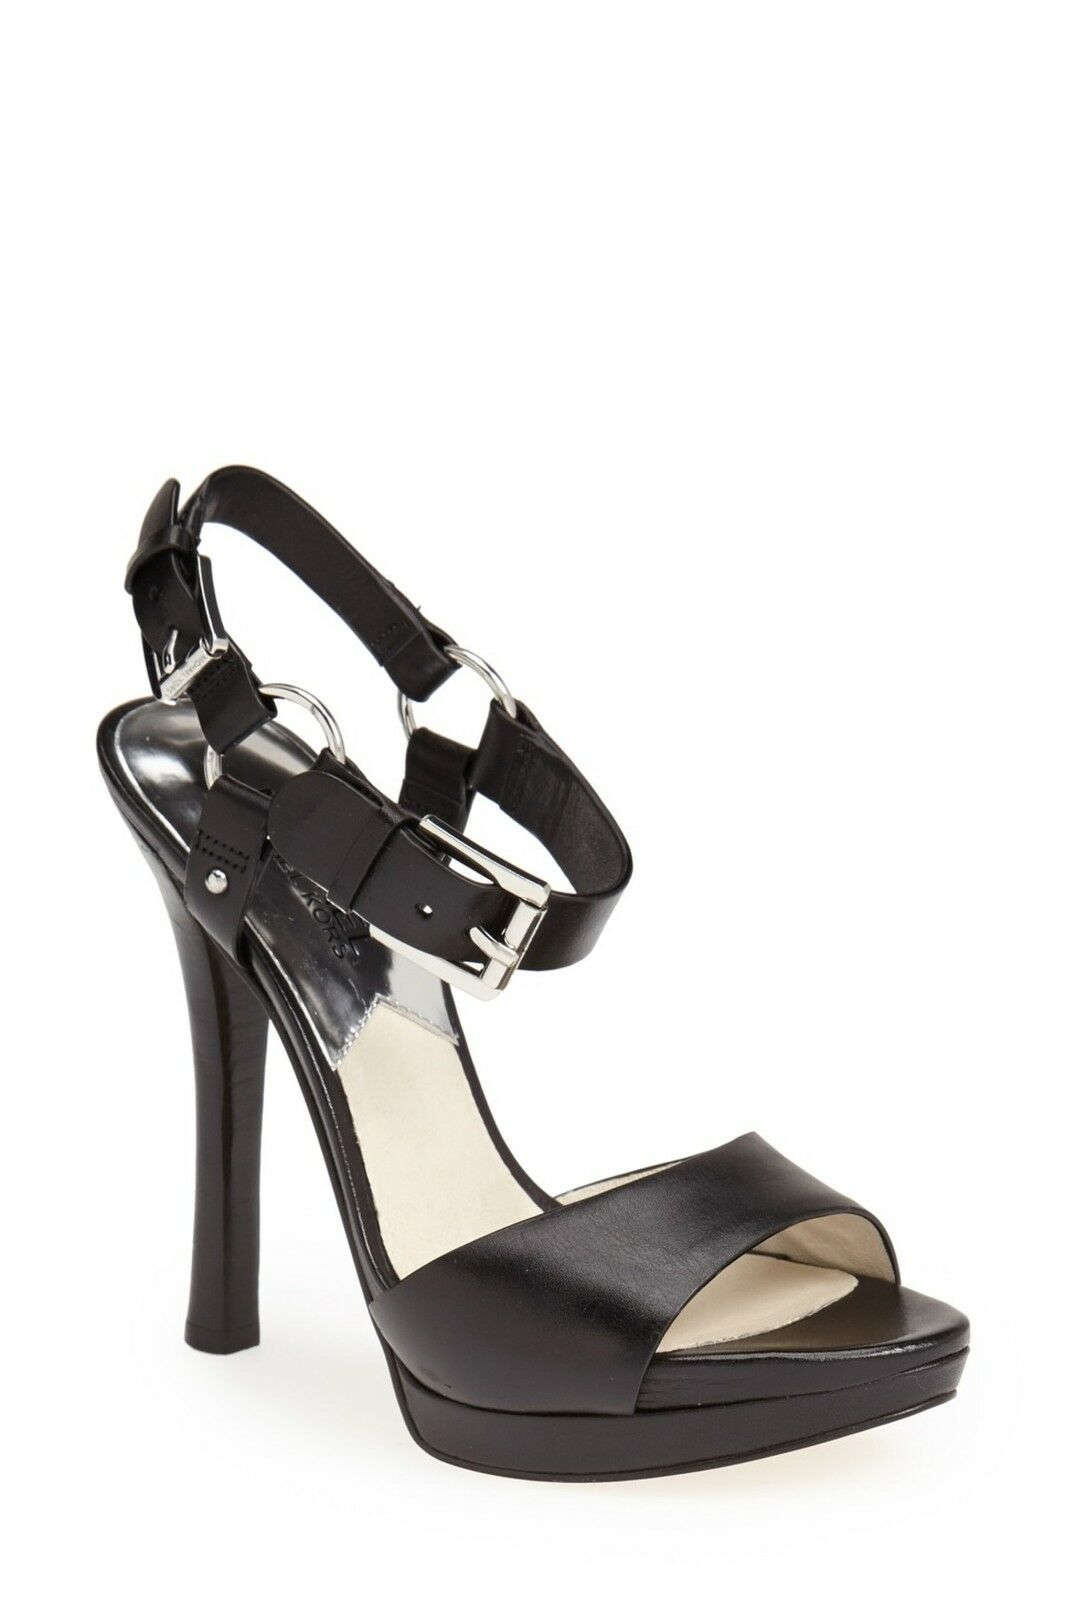 NIB MICHAEL KORS SZ 9 BLACK  HARRISON  LEATHER BLACK 9 STRAPPY PLATFORM SANDAL f5532f